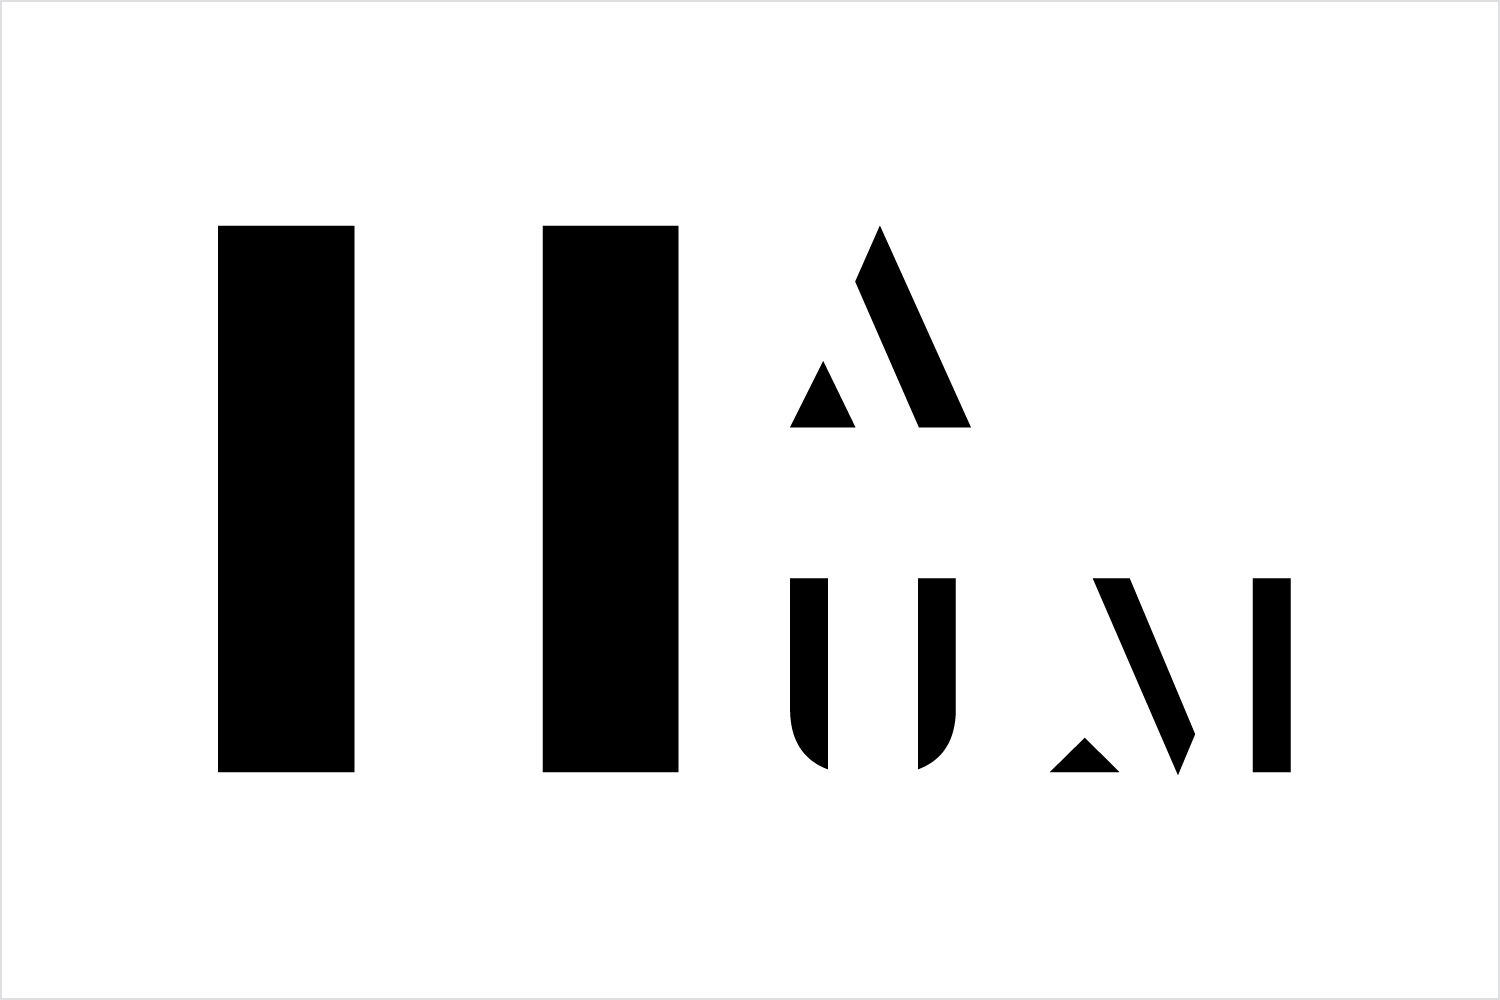 Logo by Bond for Heritage: A User's Manual, an exhibition in London's Southbank Centre